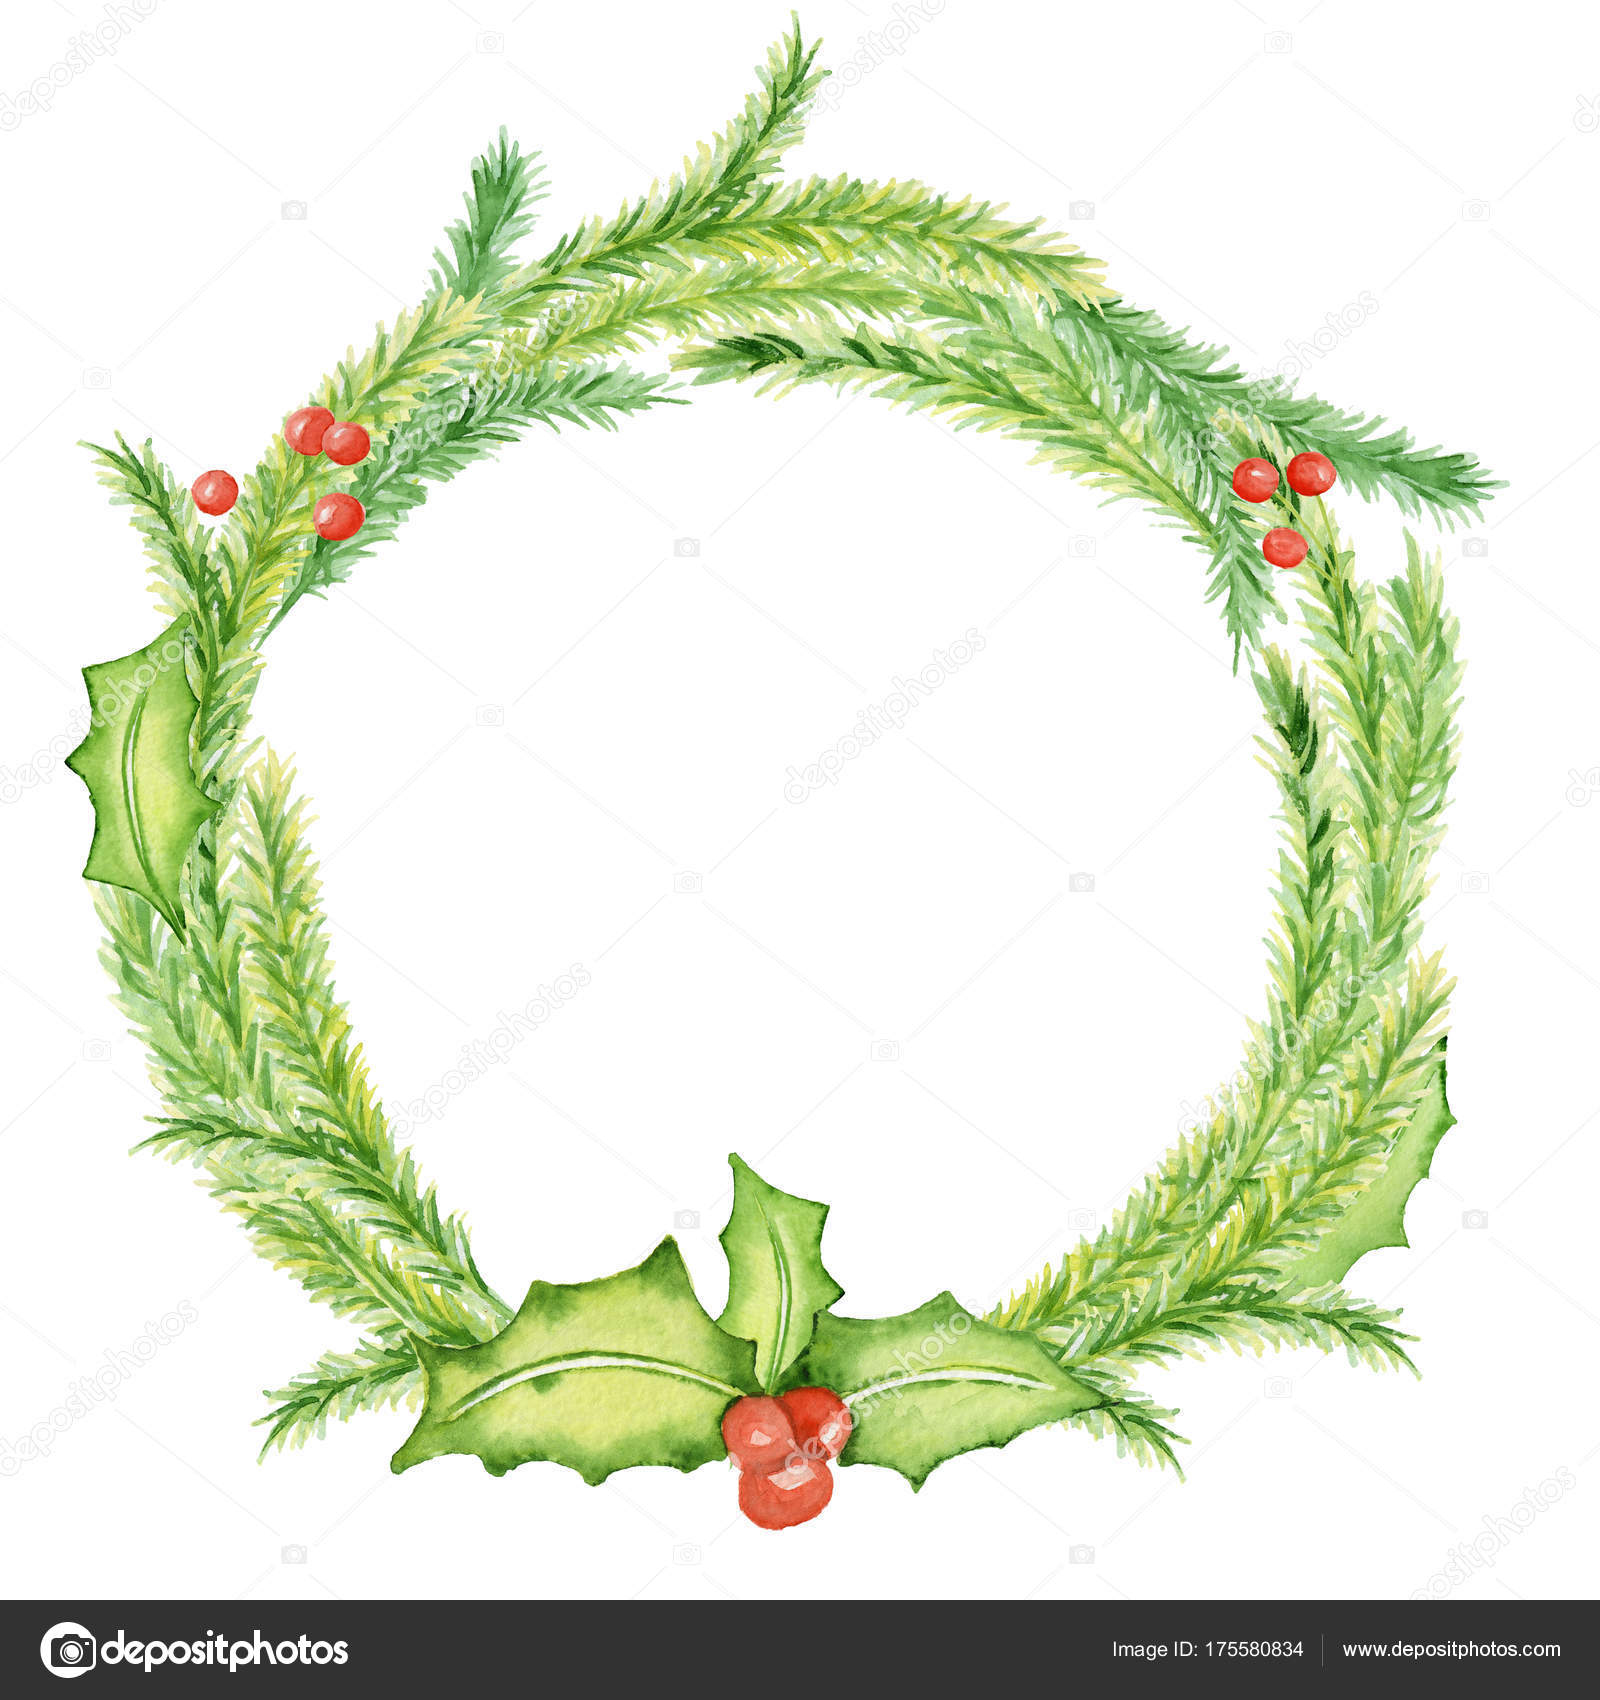 Merry Christmas watercolor wreaths with floral winter elements ...